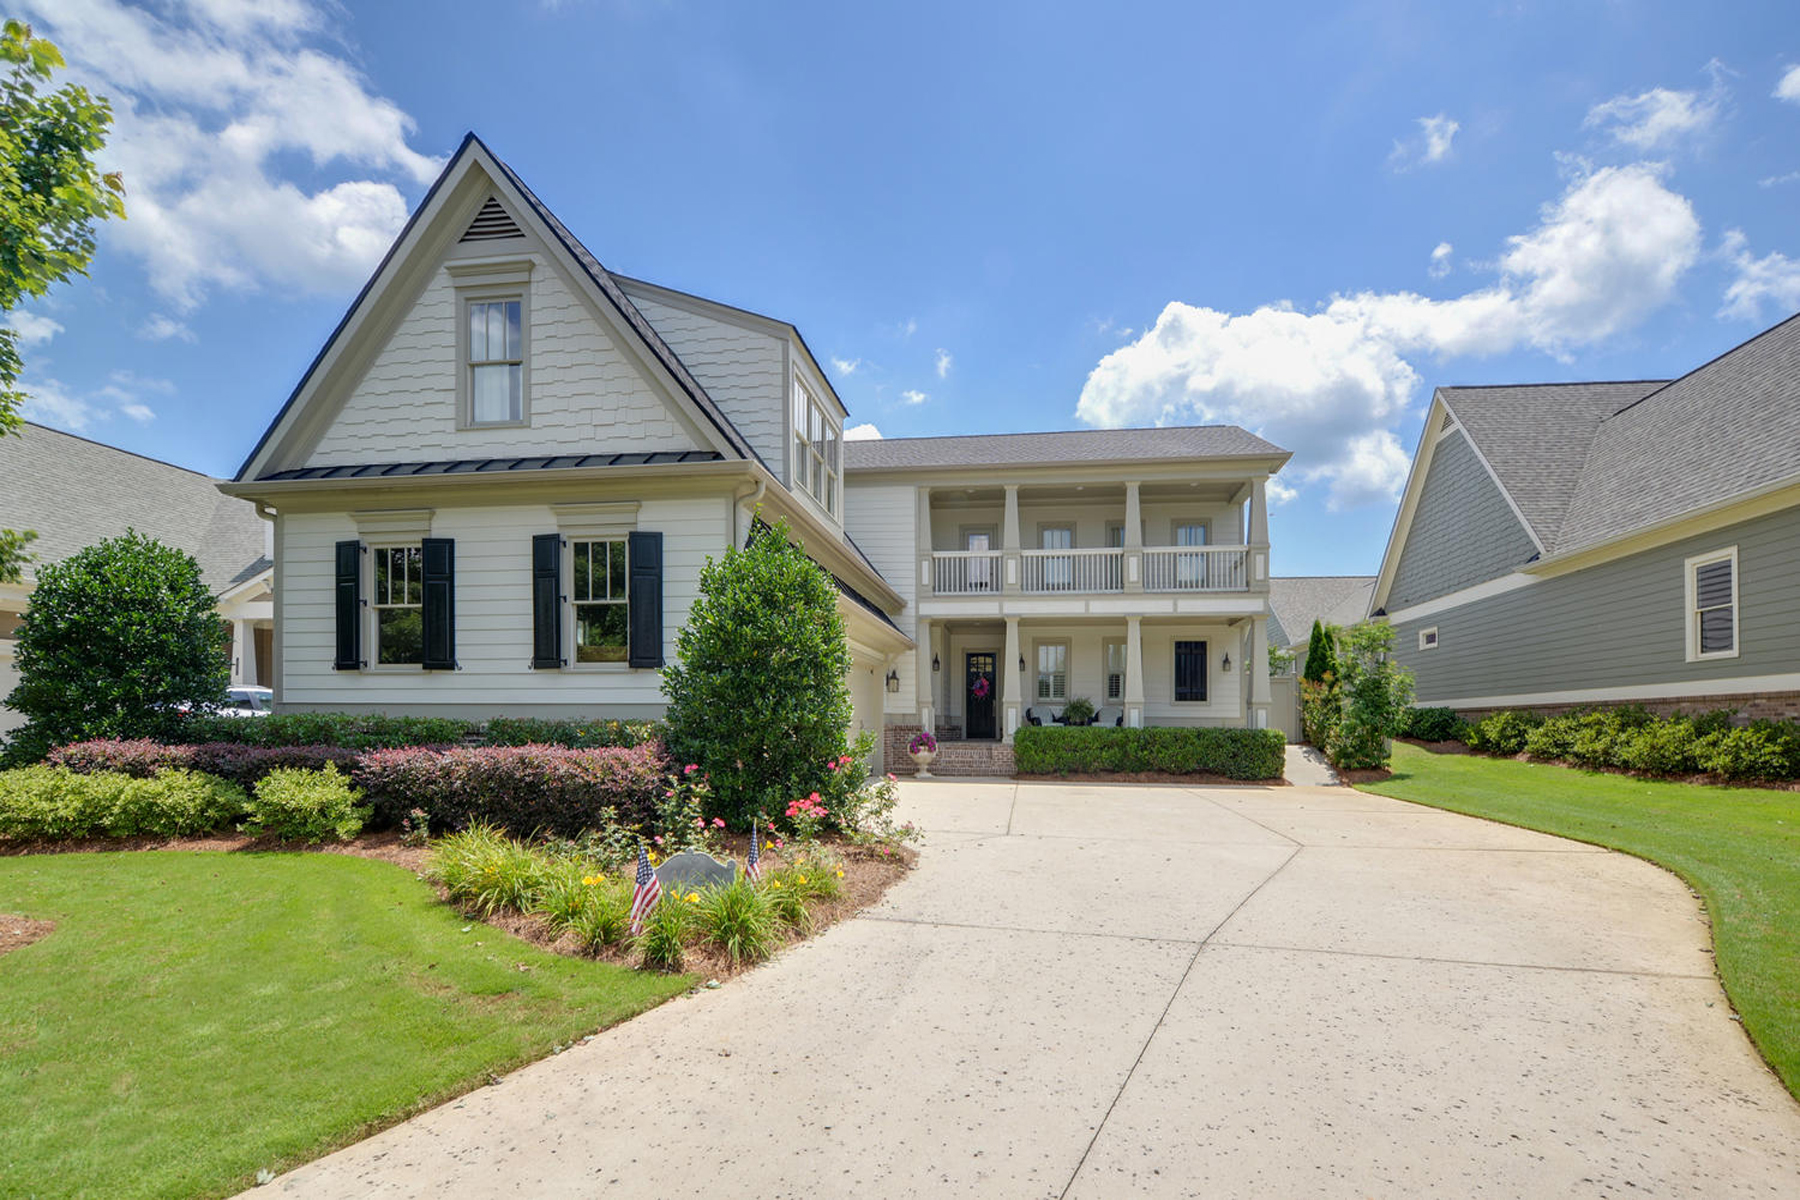 Vivienda unifamiliar por un Venta en Courtyard Style Home In The Georgia Club With Pool On Oconee County Section 1464 Greenleffe Drive Statham, Georgia, 30666 Estados Unidos